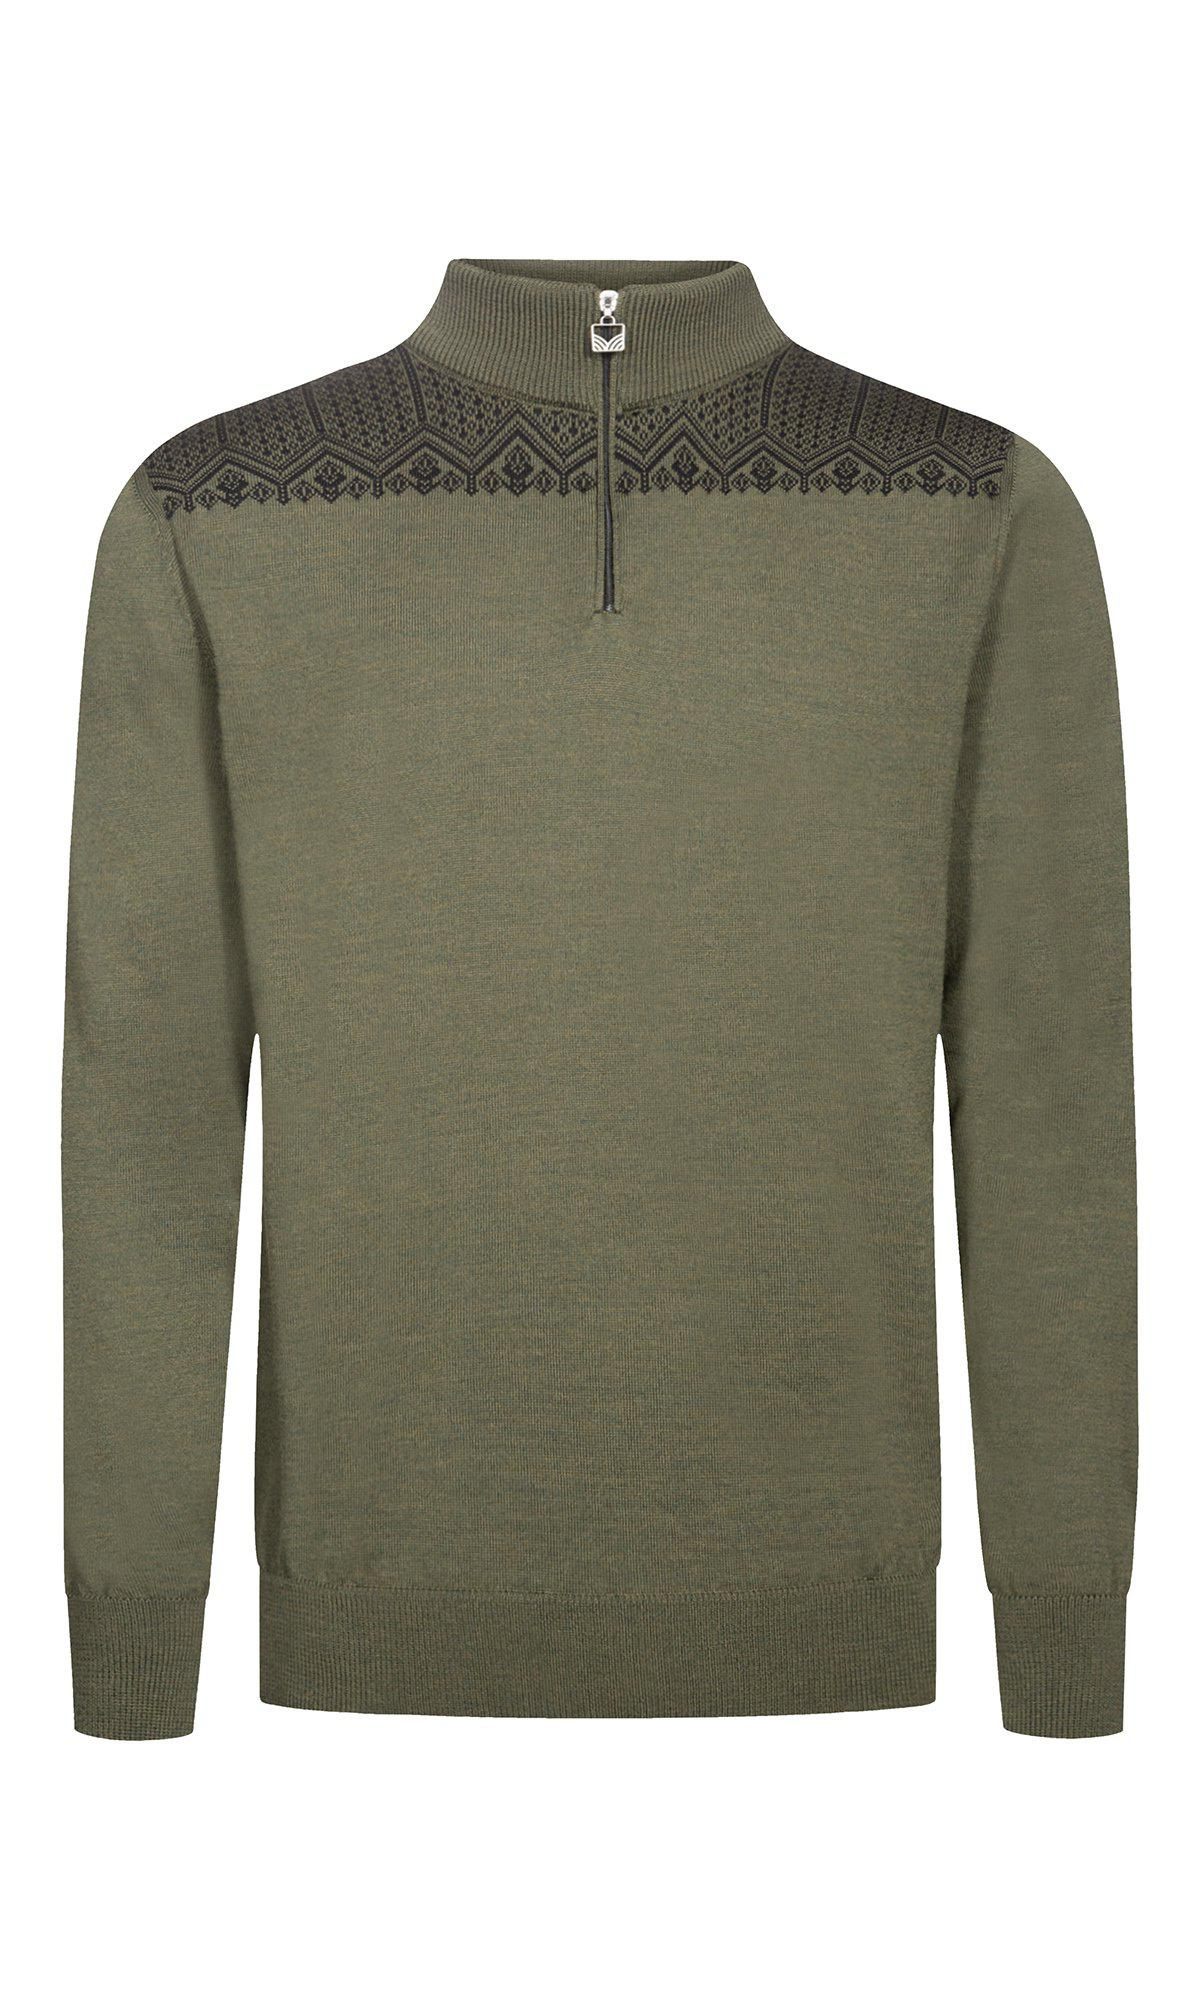 Dale of Norway - Eirik Men's Sweater - Dark Green